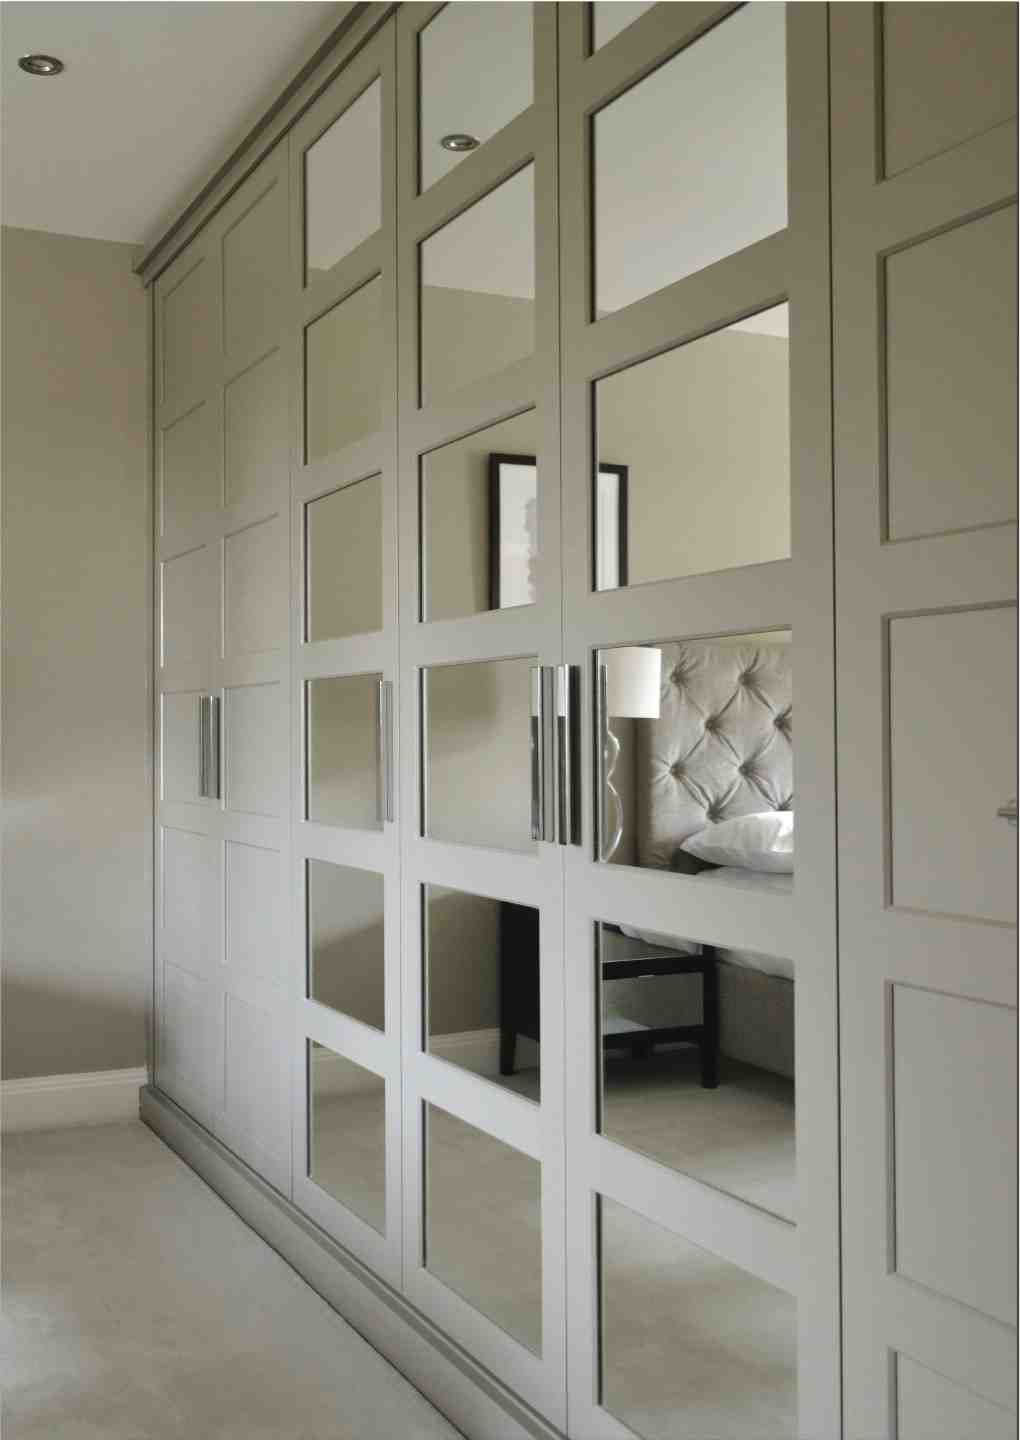 Like The Balance Of Mirrors In The Wardrobe Doors Wardrobe Doors Bedroom Built In Wardrobe Bedroom Furniture Design